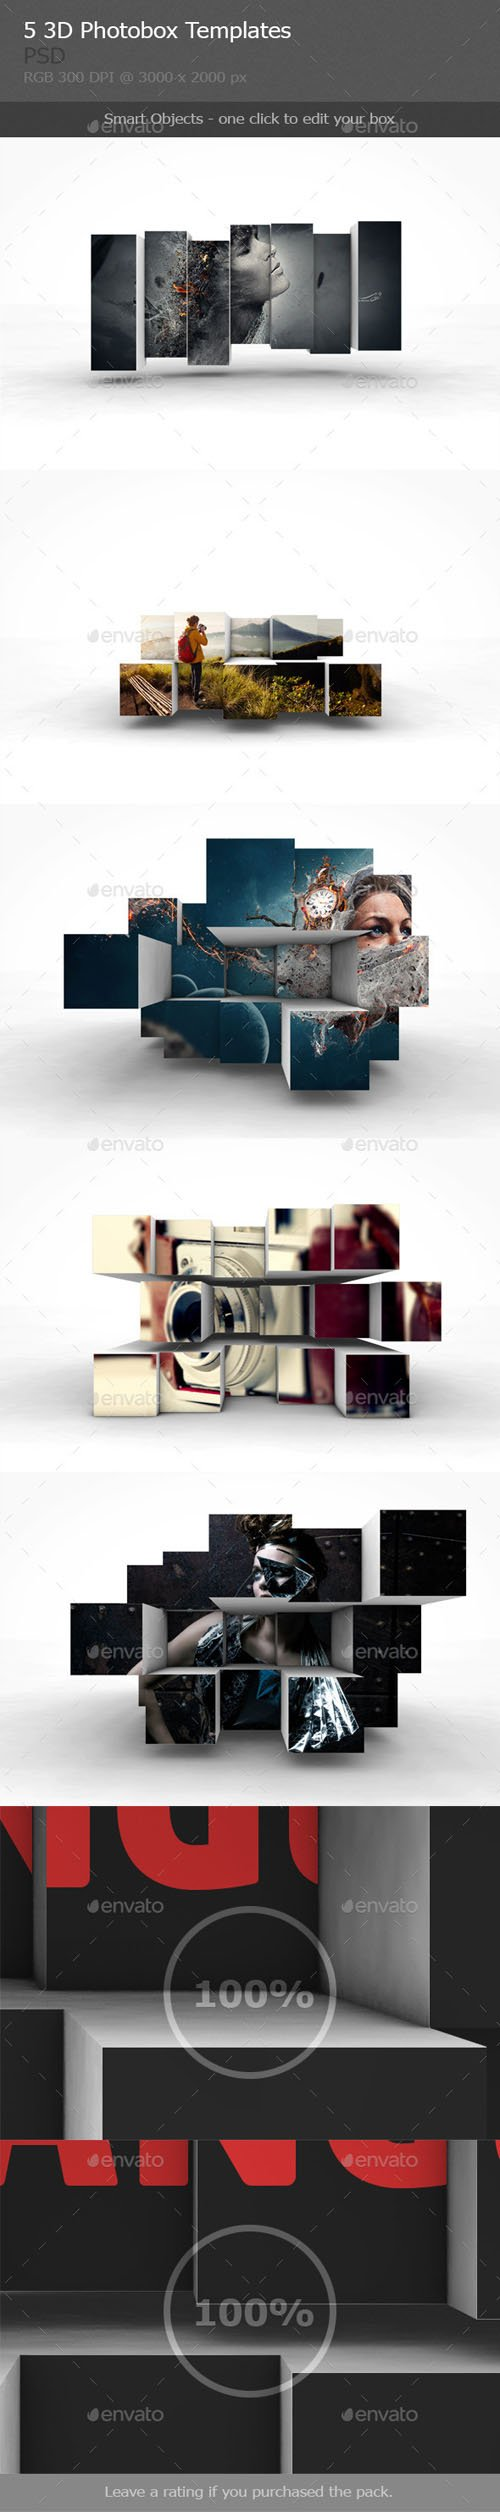 3D Photobox Template - Graphicriver 9571901